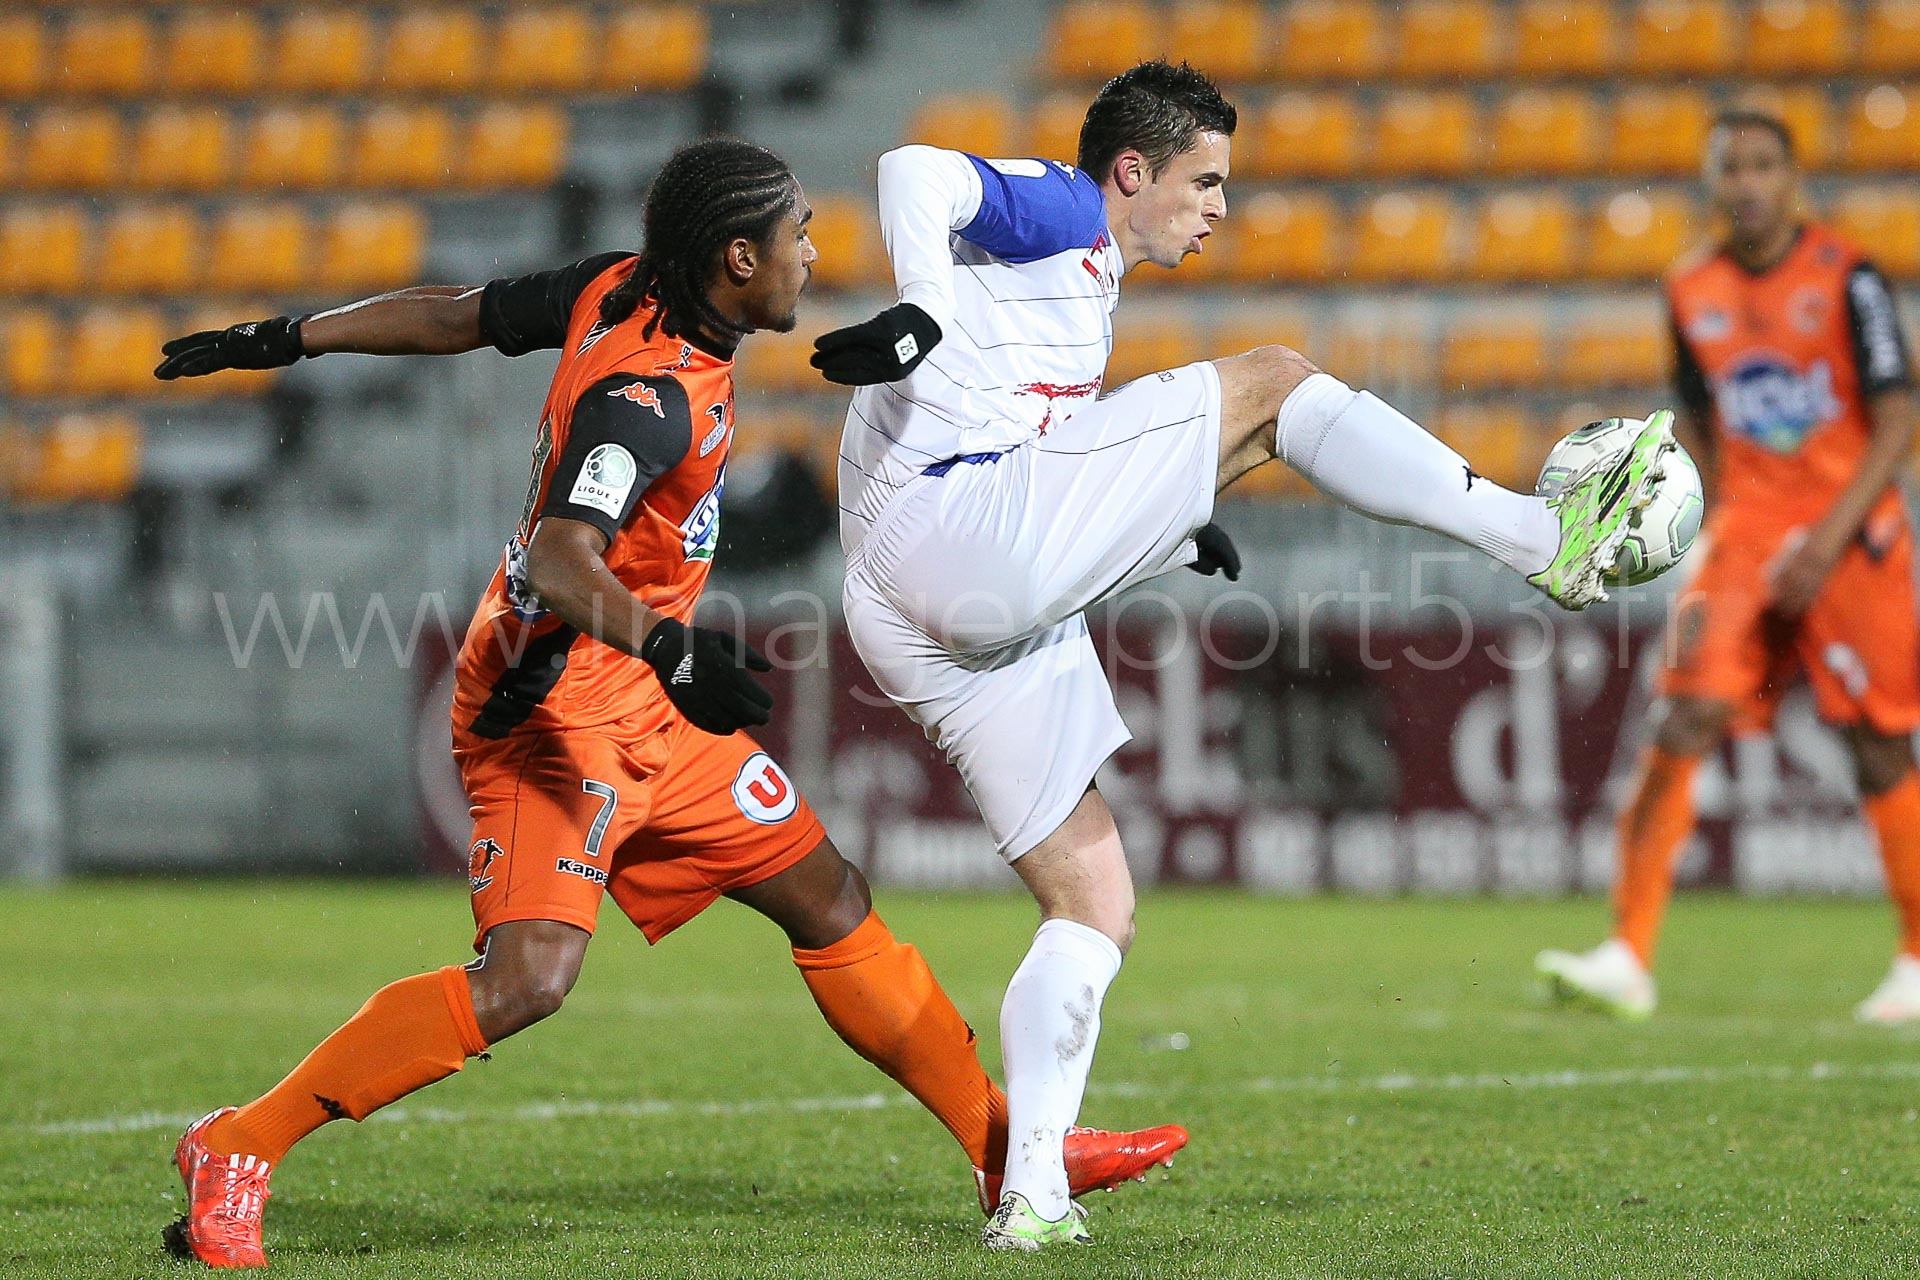 NG-Ligue2-1415-J22-Laval-Troyes_29